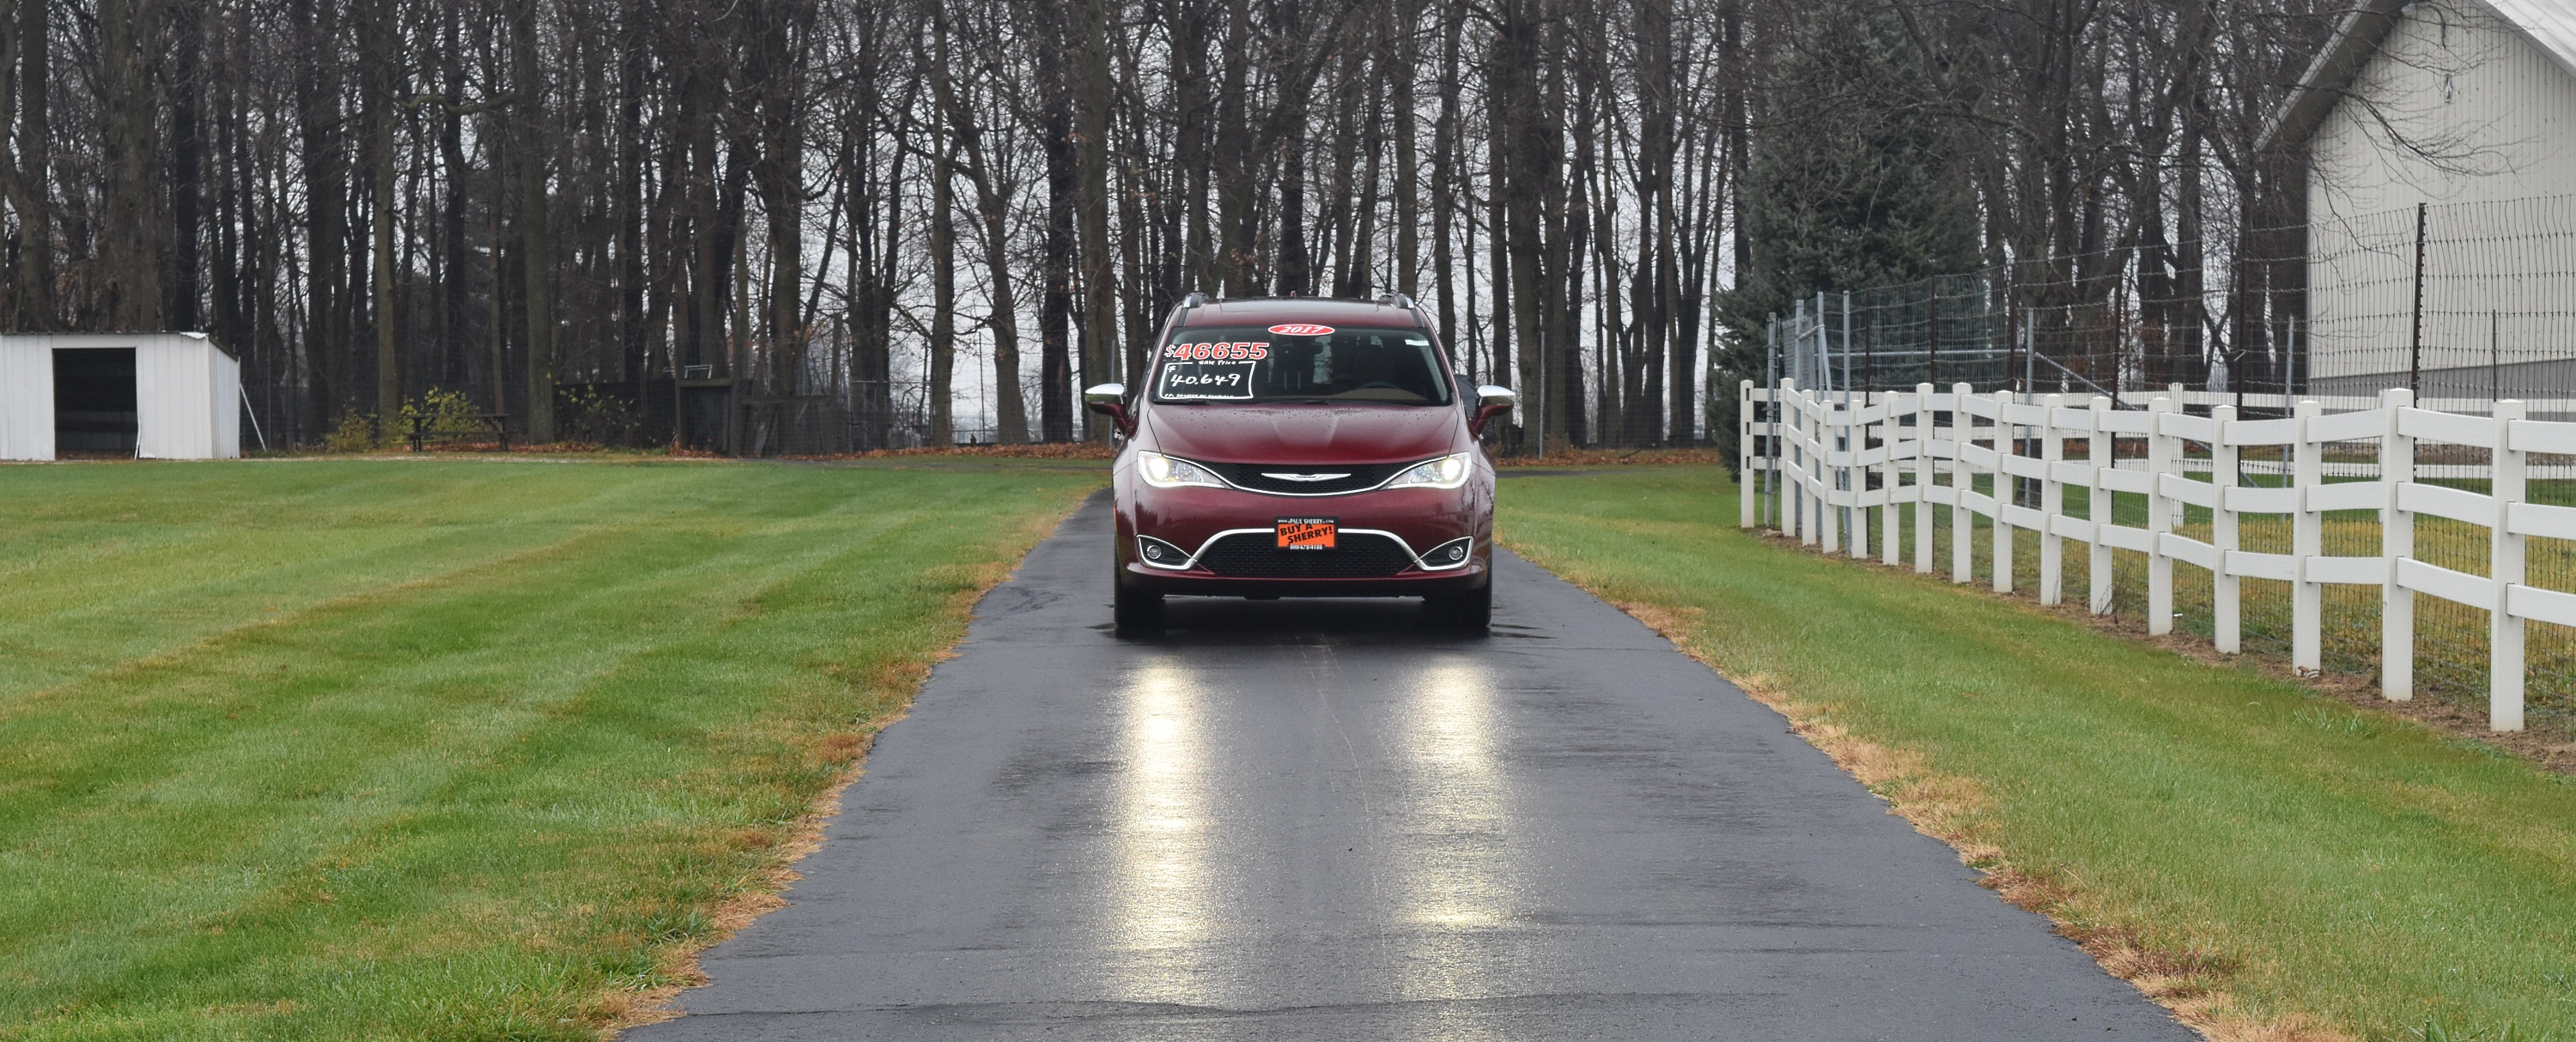 chrysler unveil general fiat and motors deals self epeak driving